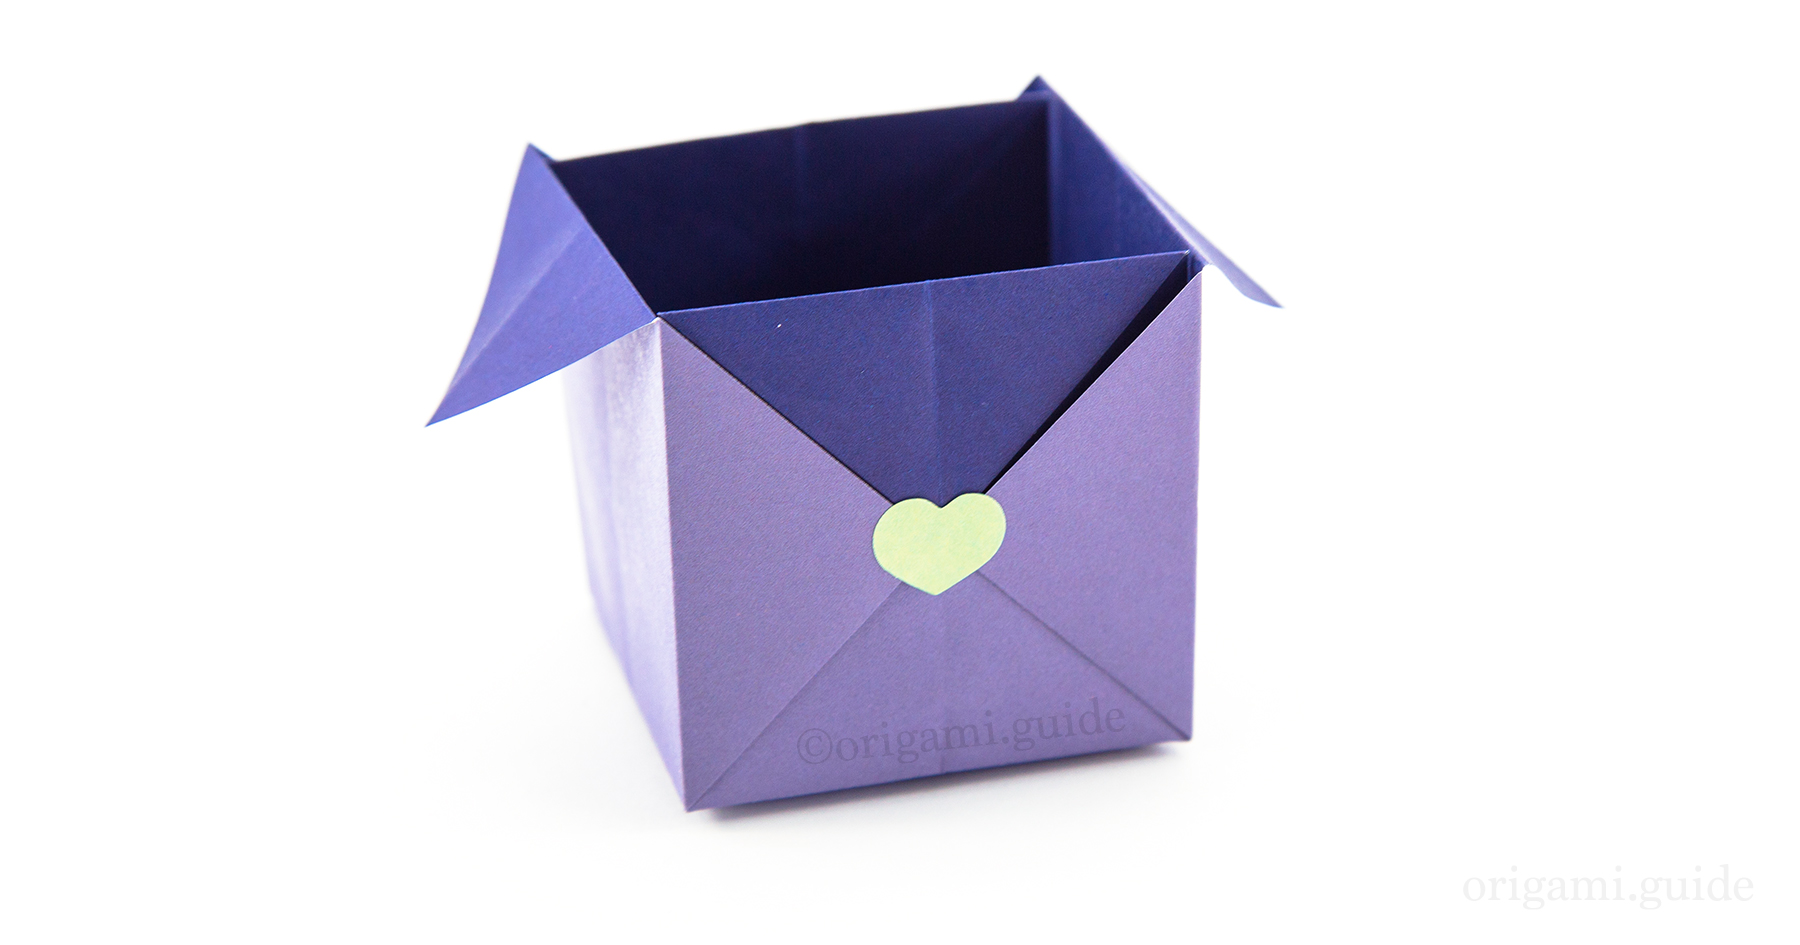 How To Make An Easy Origami Packaging Box | Origami Guide ... - photo#47